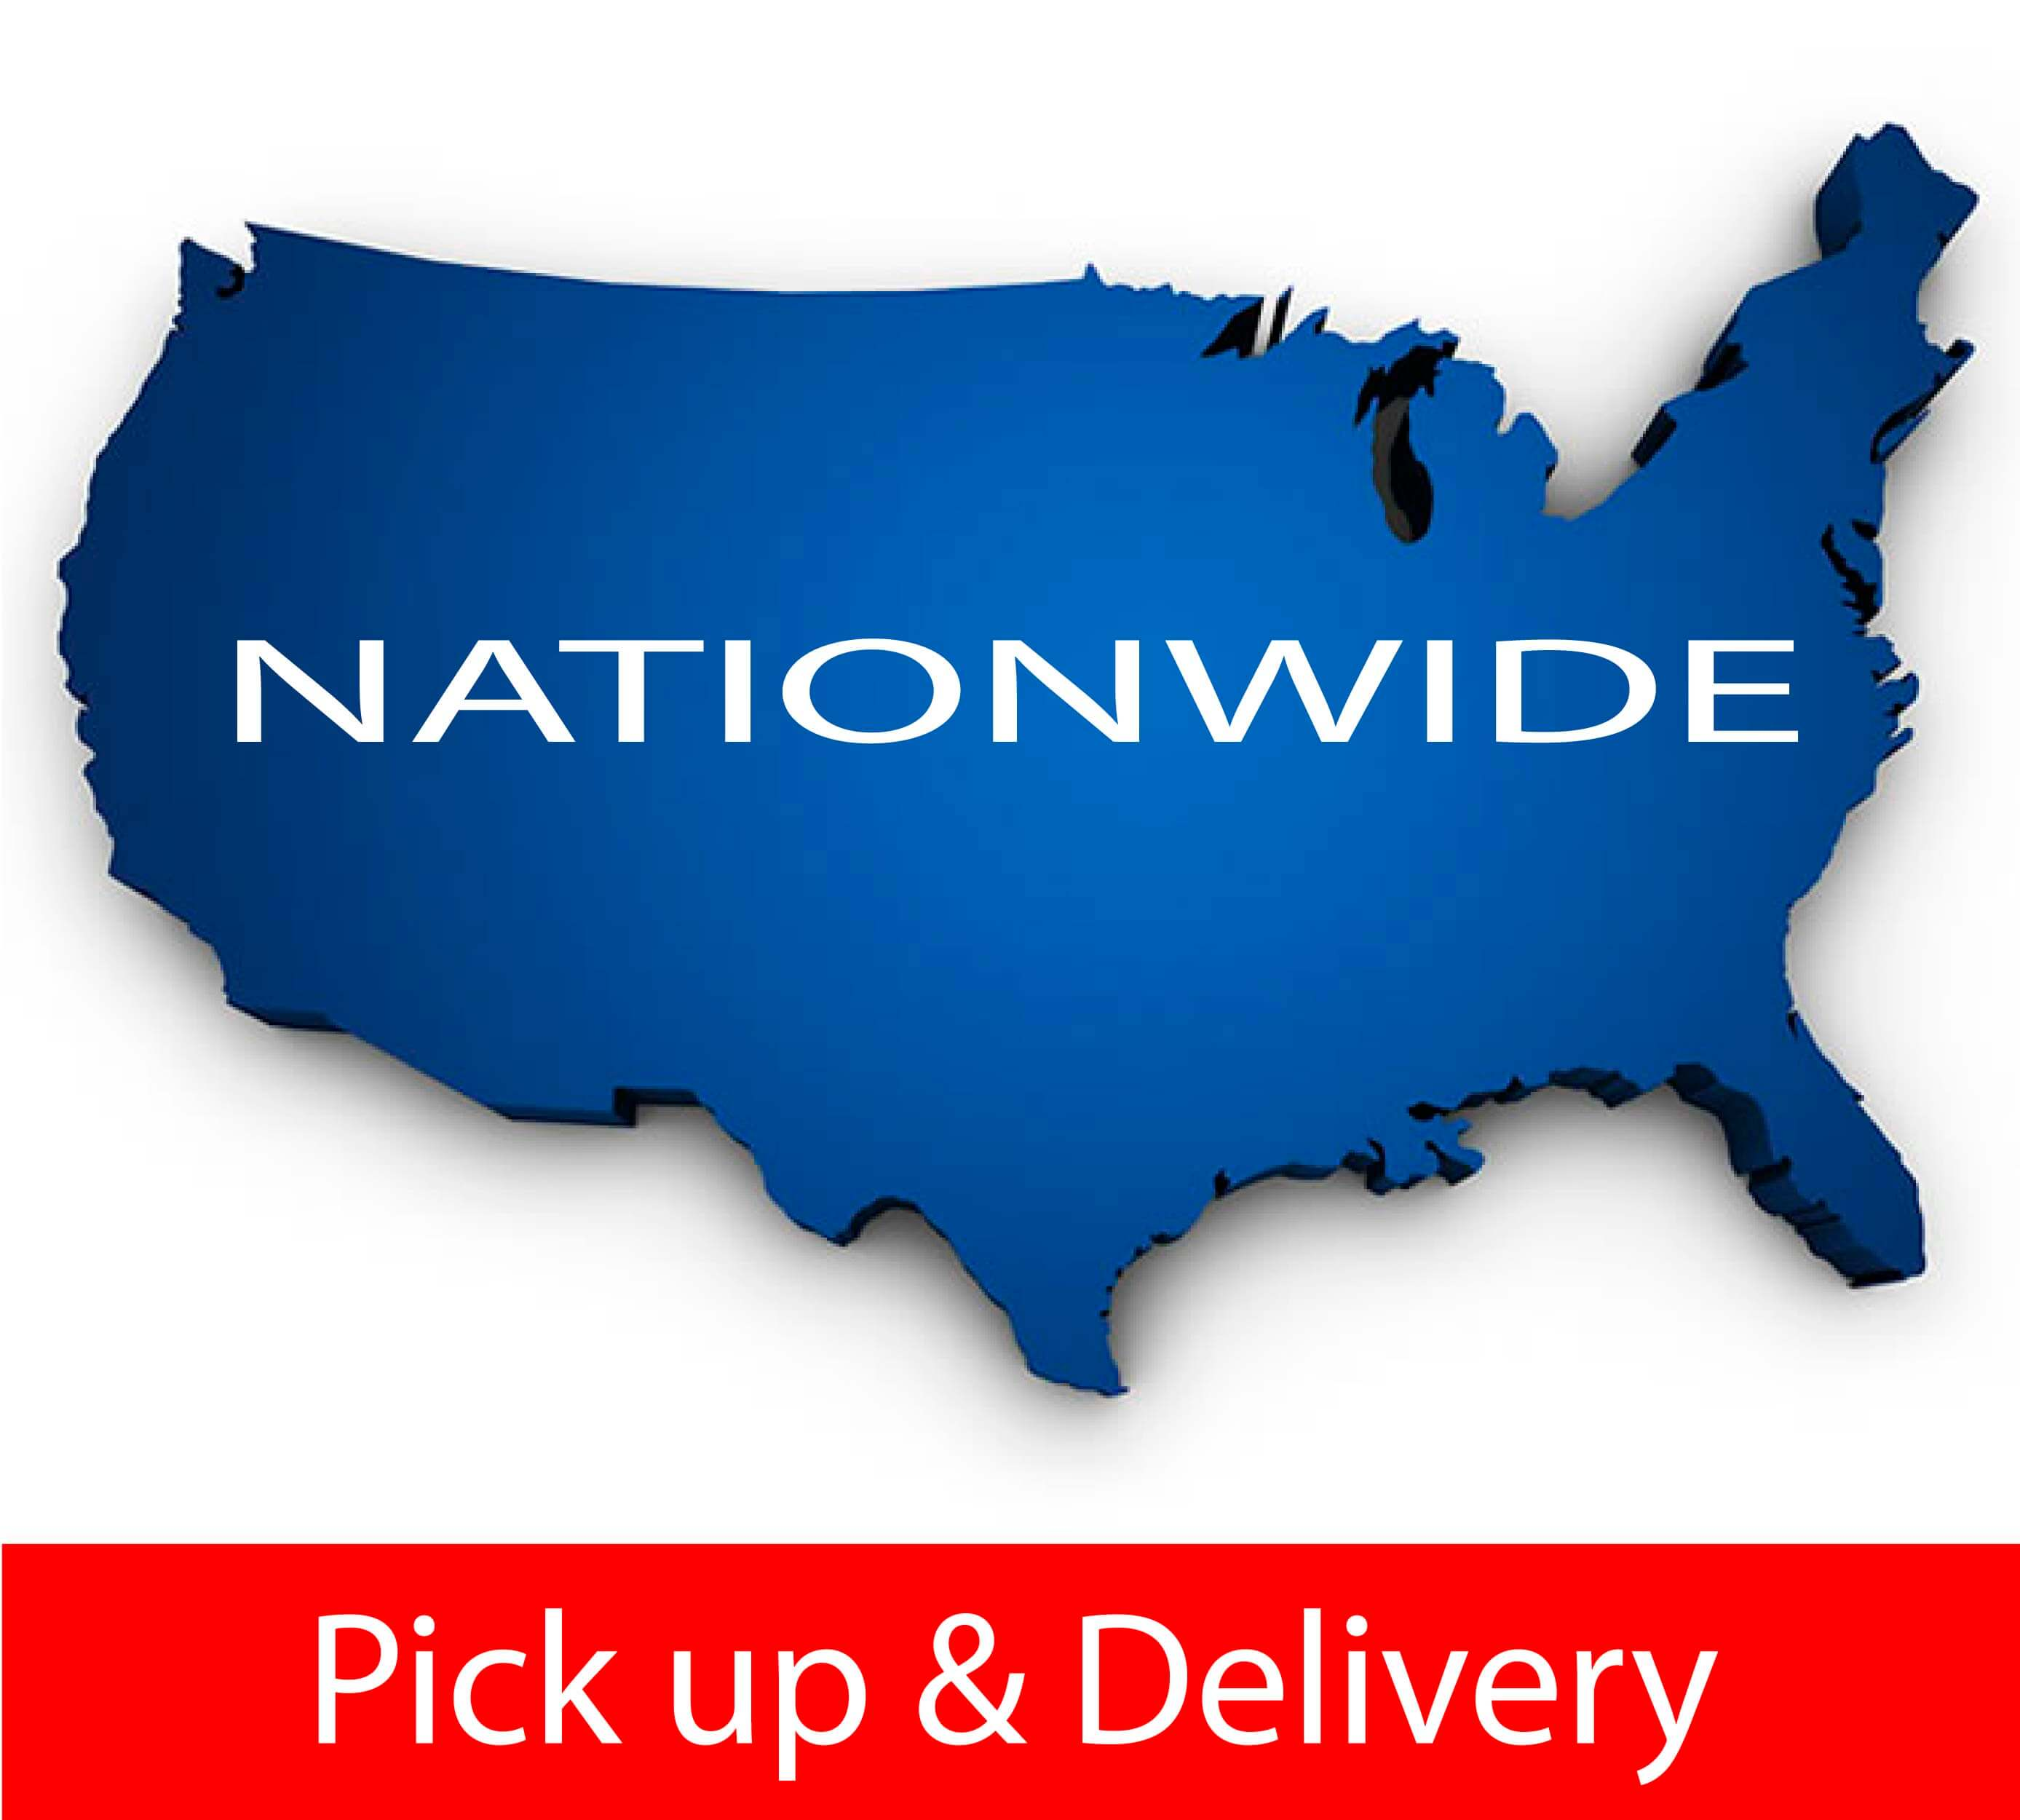 Sun Equipment offers nationwide pick up and delivery